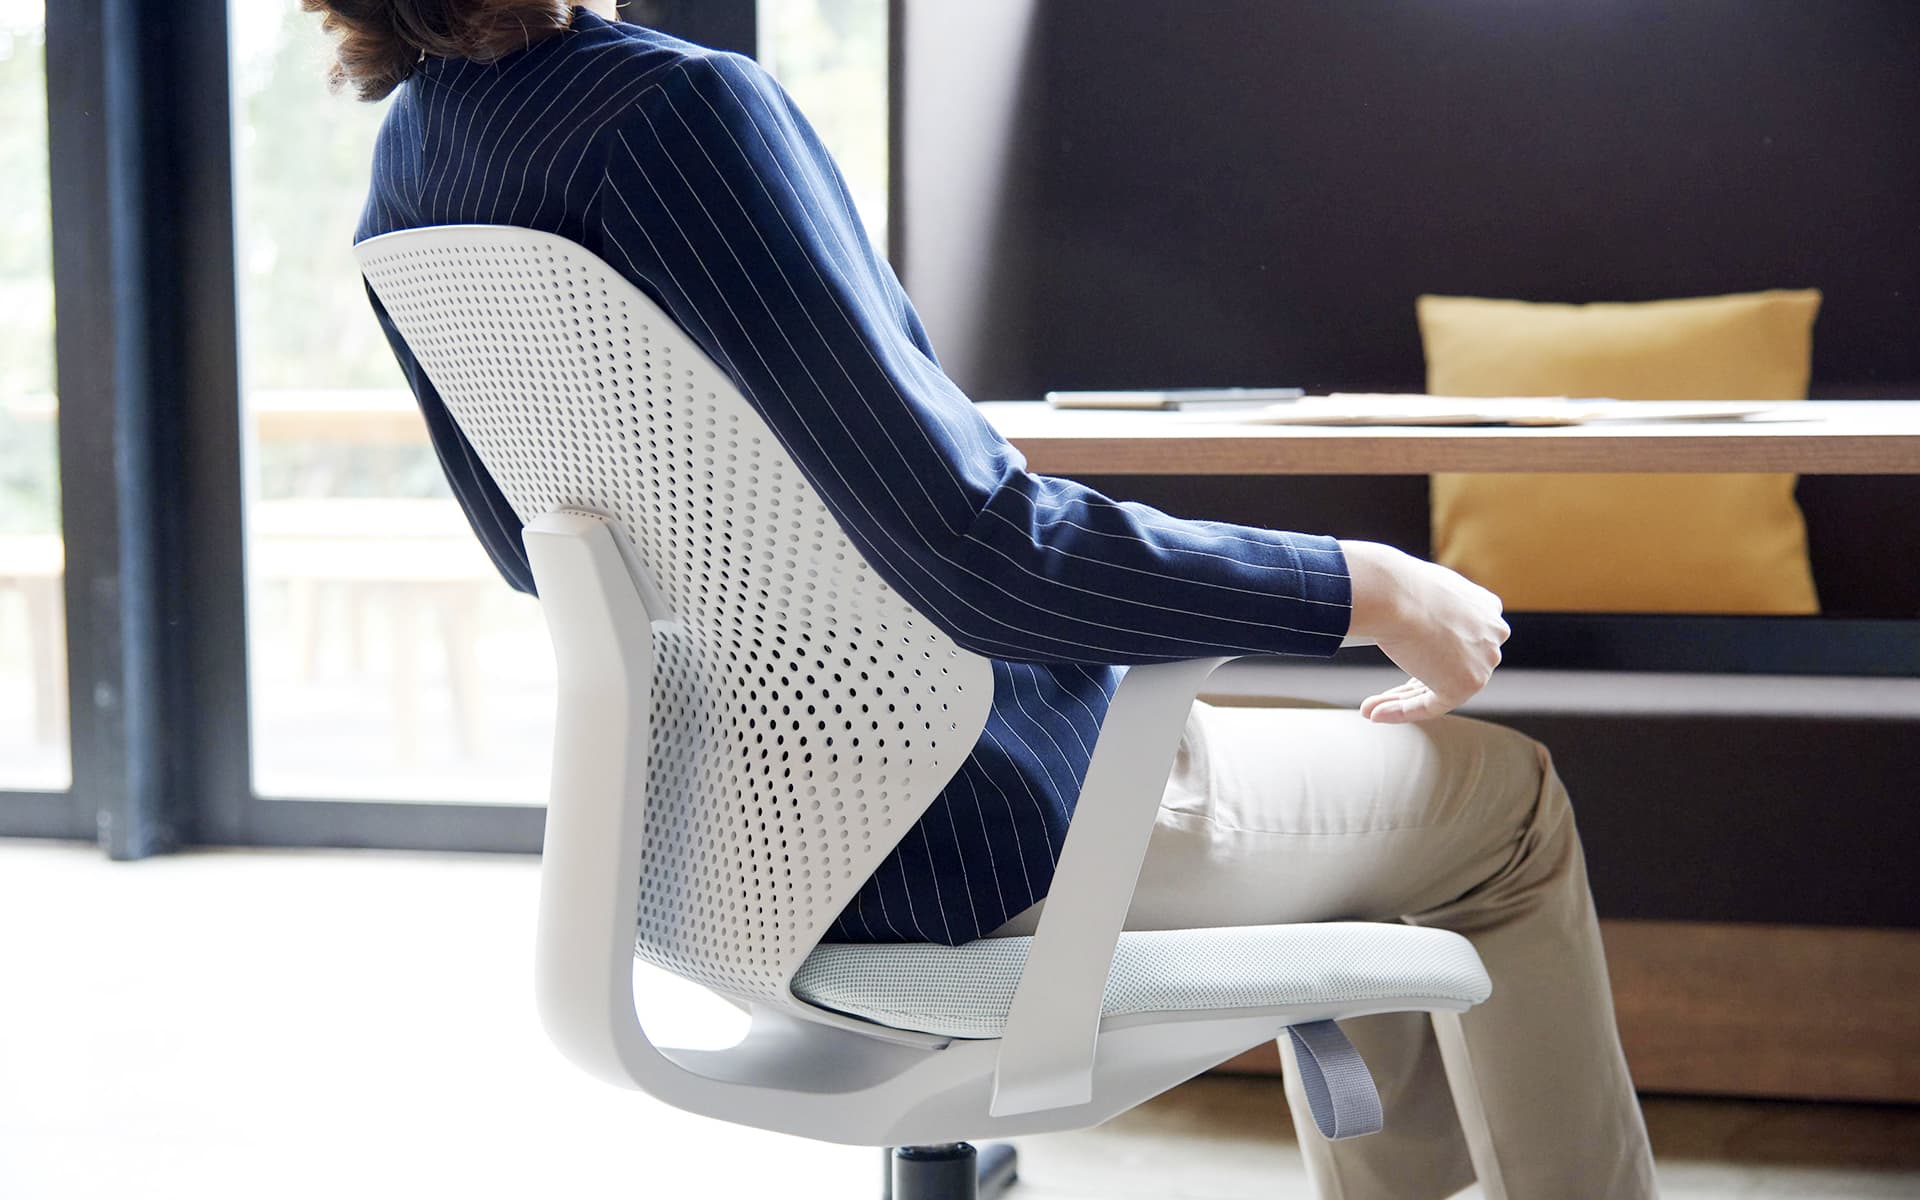 An elegantly dressed woman sits in a white ITOKI QuA office chair by ITO Design